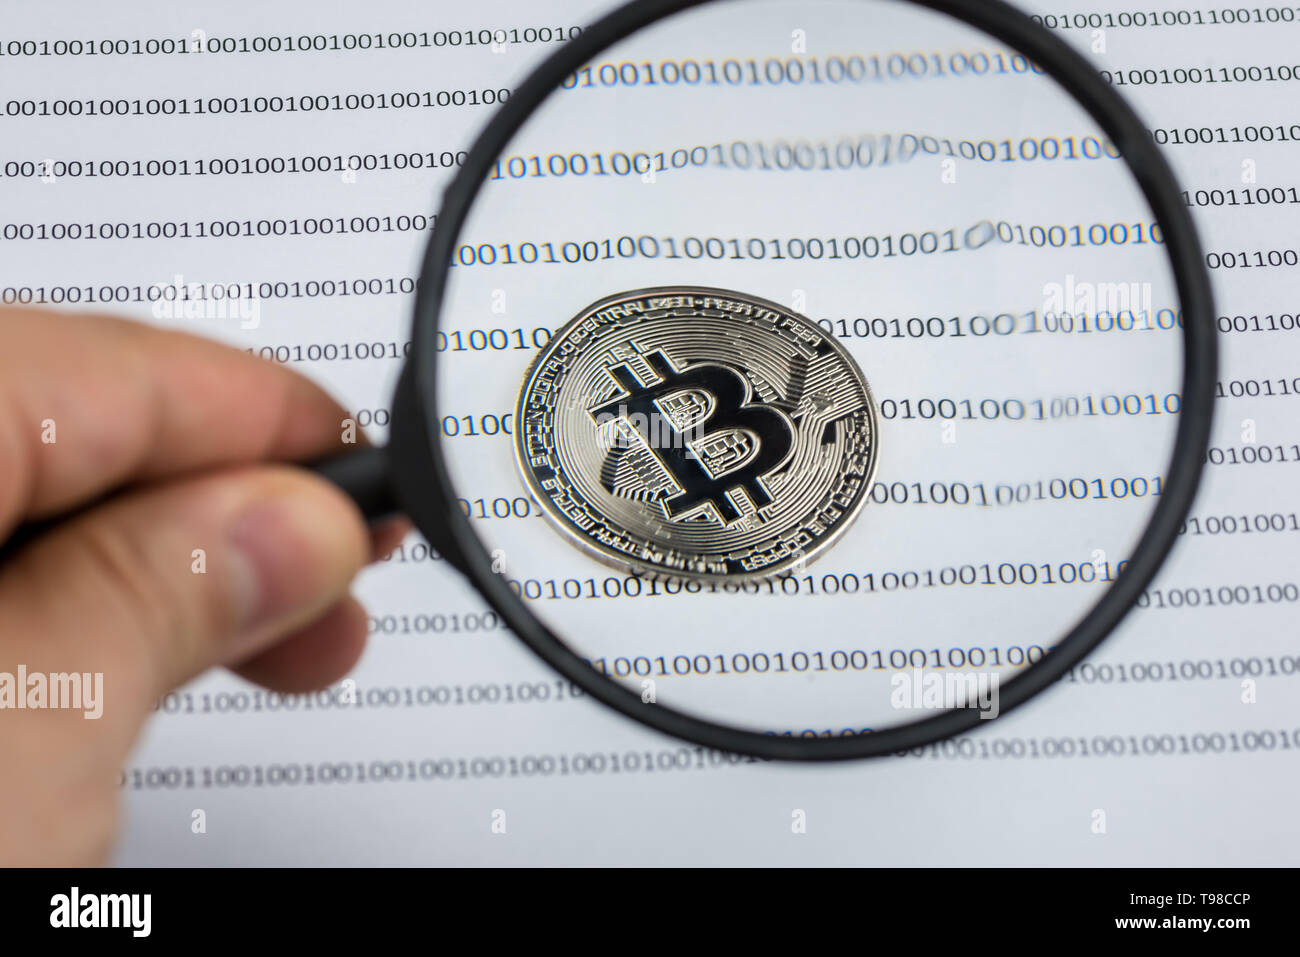 Man hand holds magnifying glass over bitcoin, cryptocurrency physical coin on paper with binary system of zeros and ones.Virtual cryptocurrency concep - Stock Image